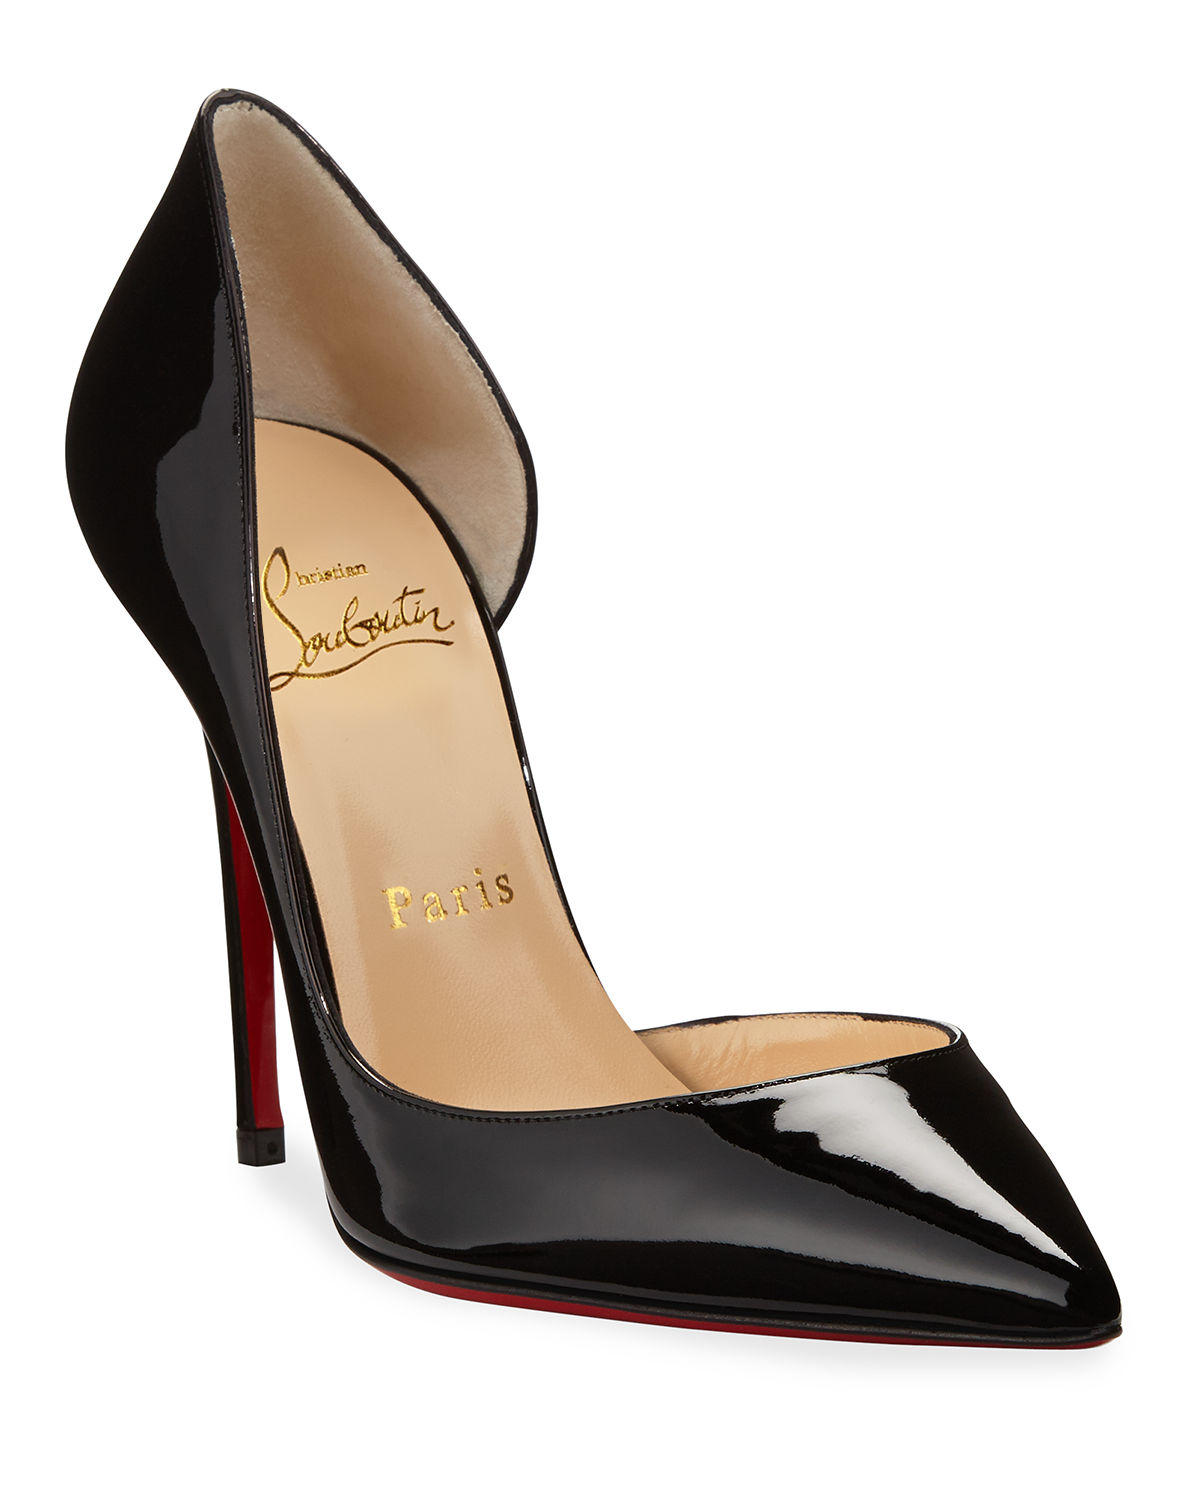 buy online 5314f c0a99 Iriza Patent Open-Side Red Sole Pump